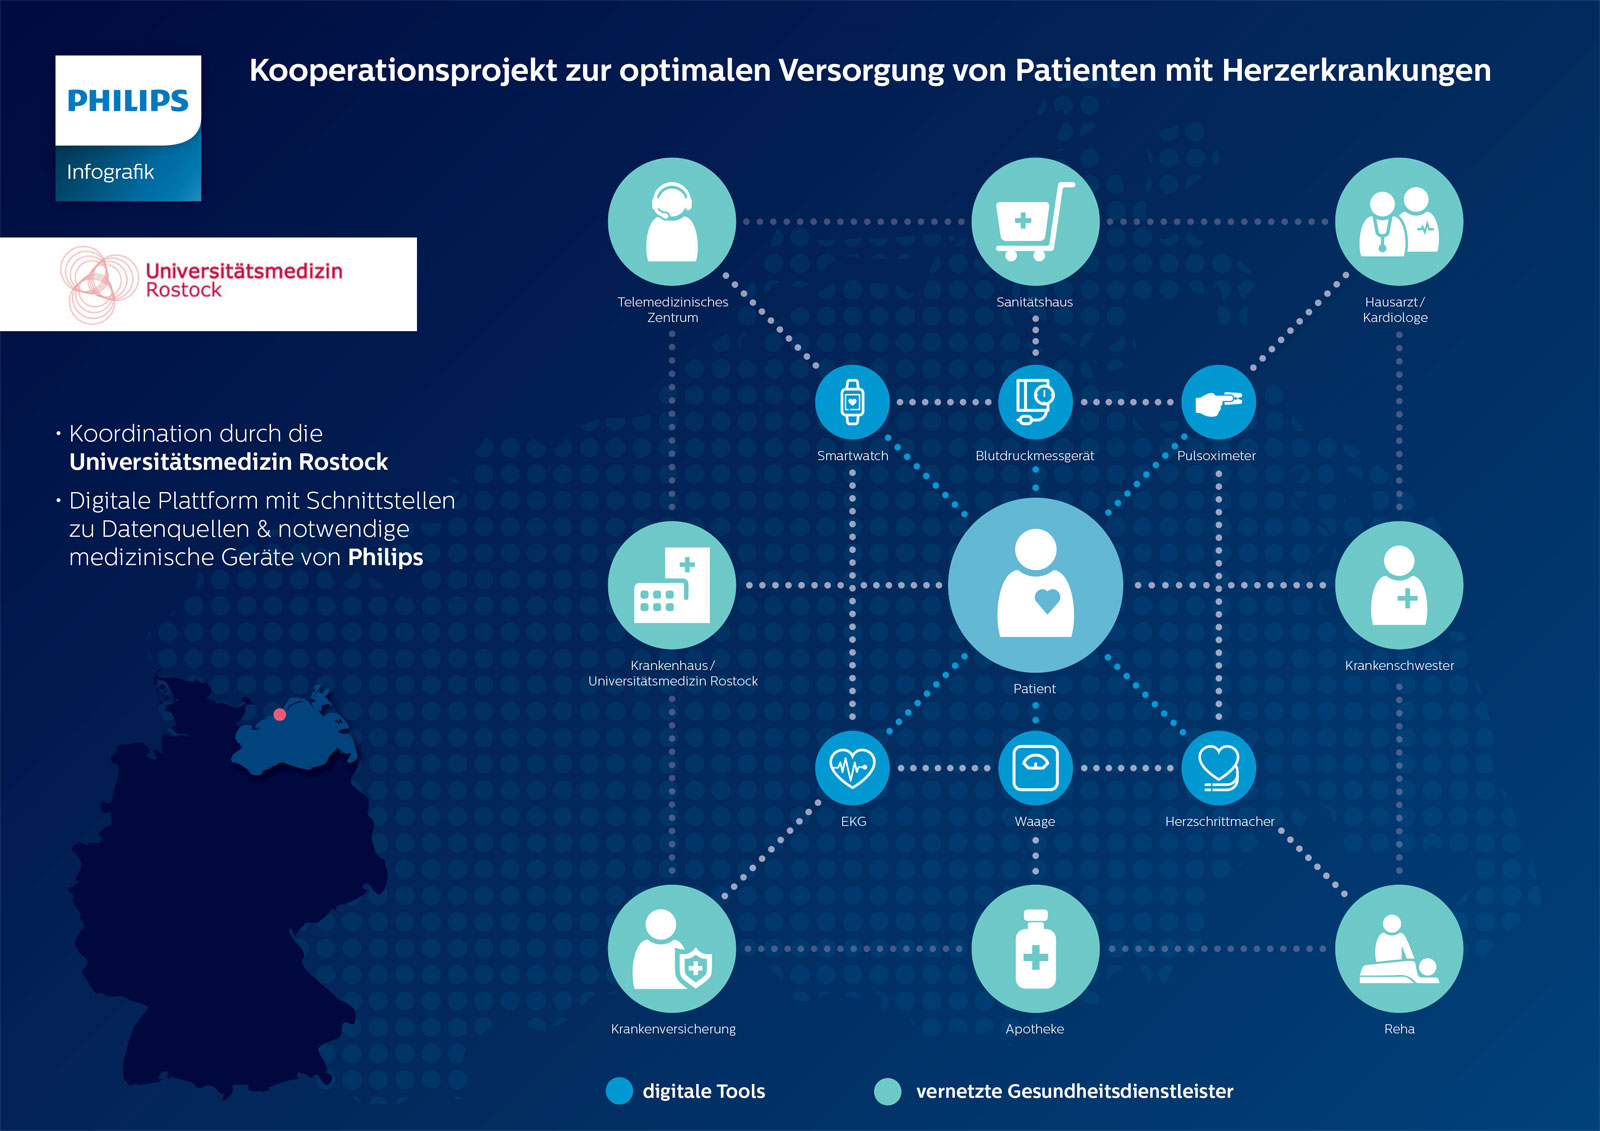 Infografik Philips HerzEffekt MV Digitale Versorgung Innovationsfonds Techniker Krankenkasse